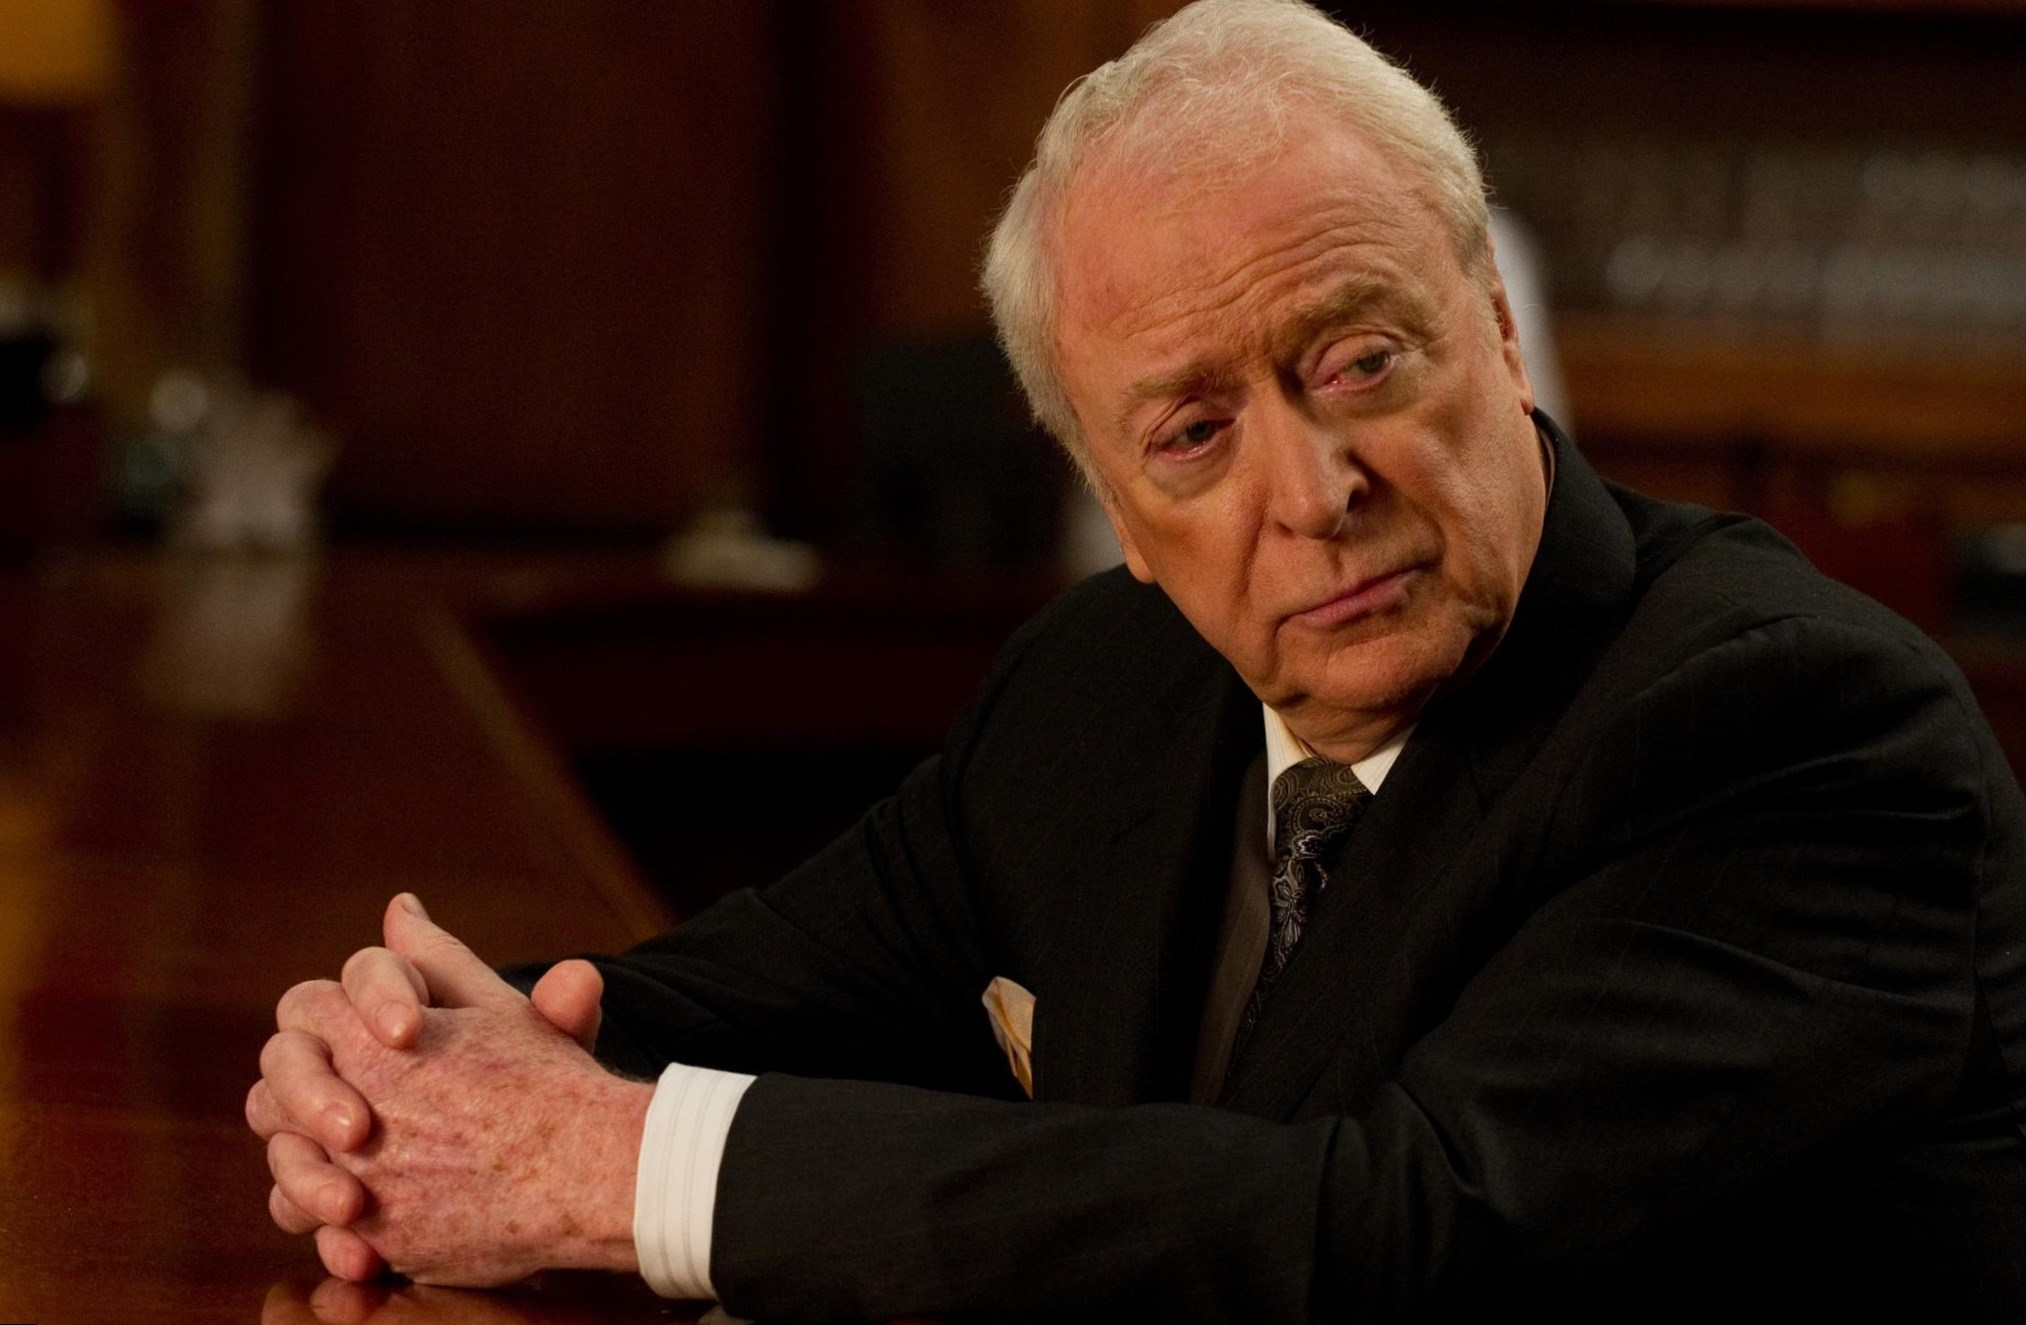 Michael Caine Best Movies and TV Shows